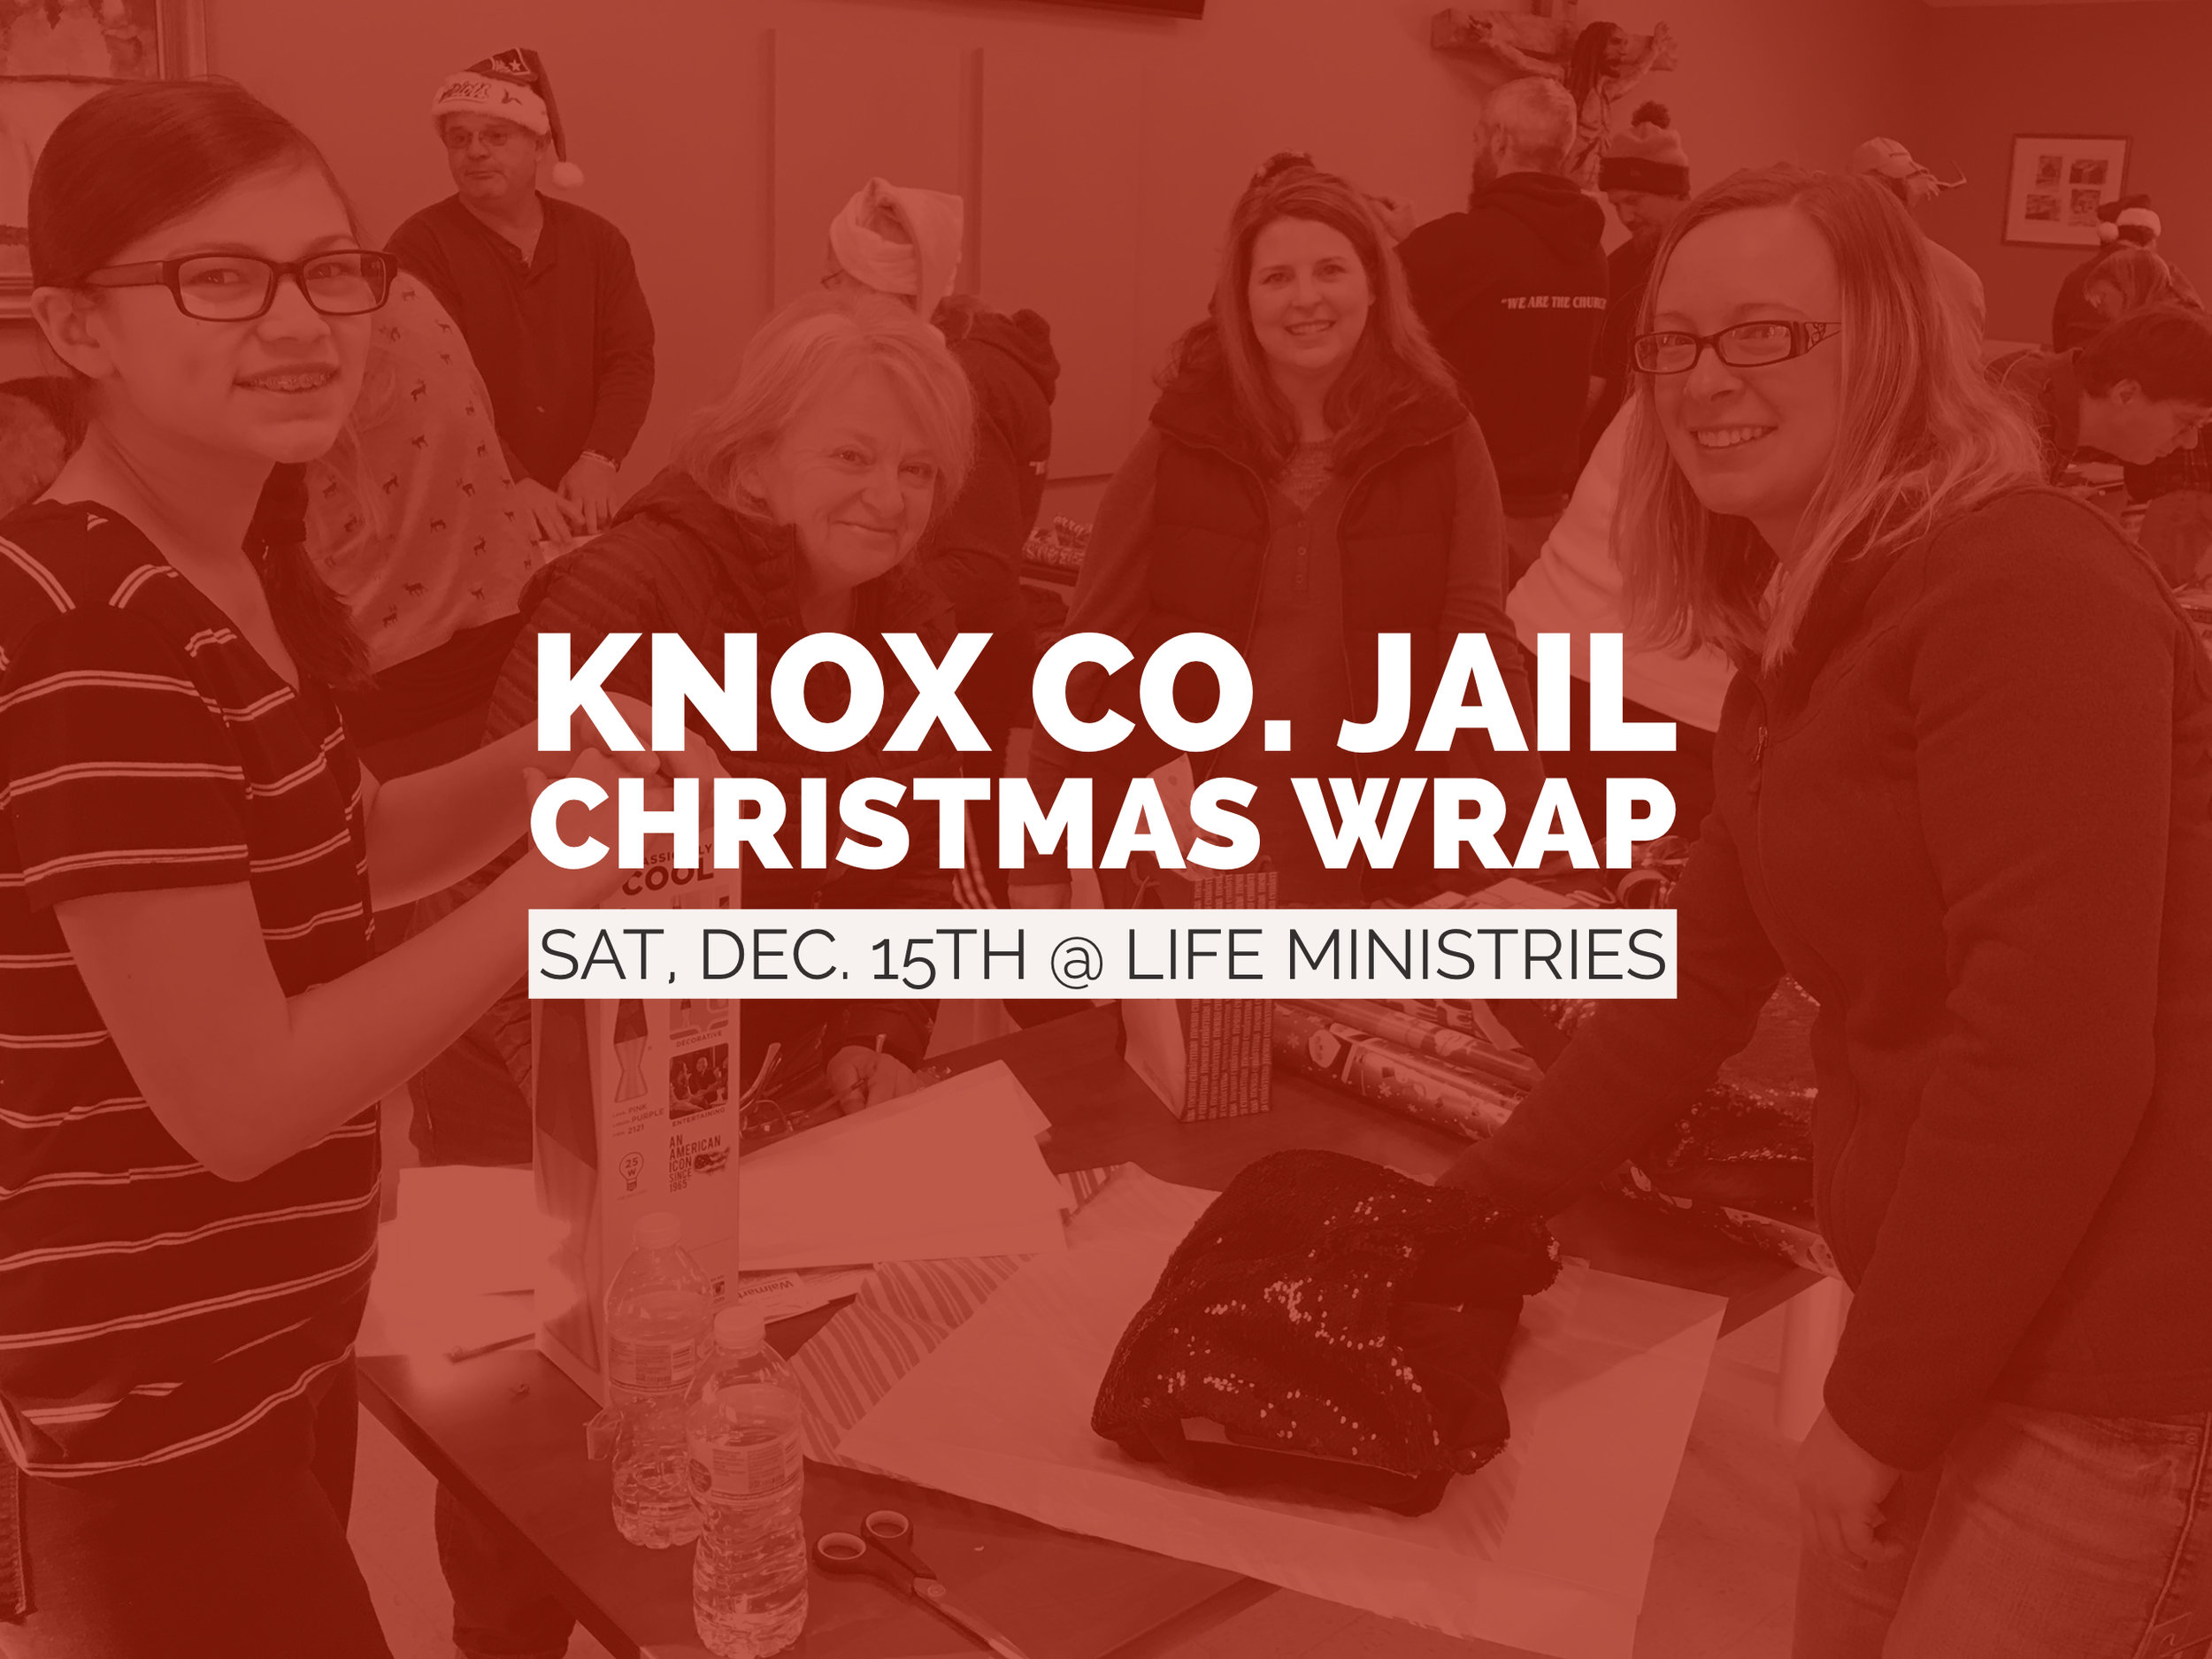 Knox County Jail Christmas Wrap Event with LIFE Ministries, Saturday, December 15th